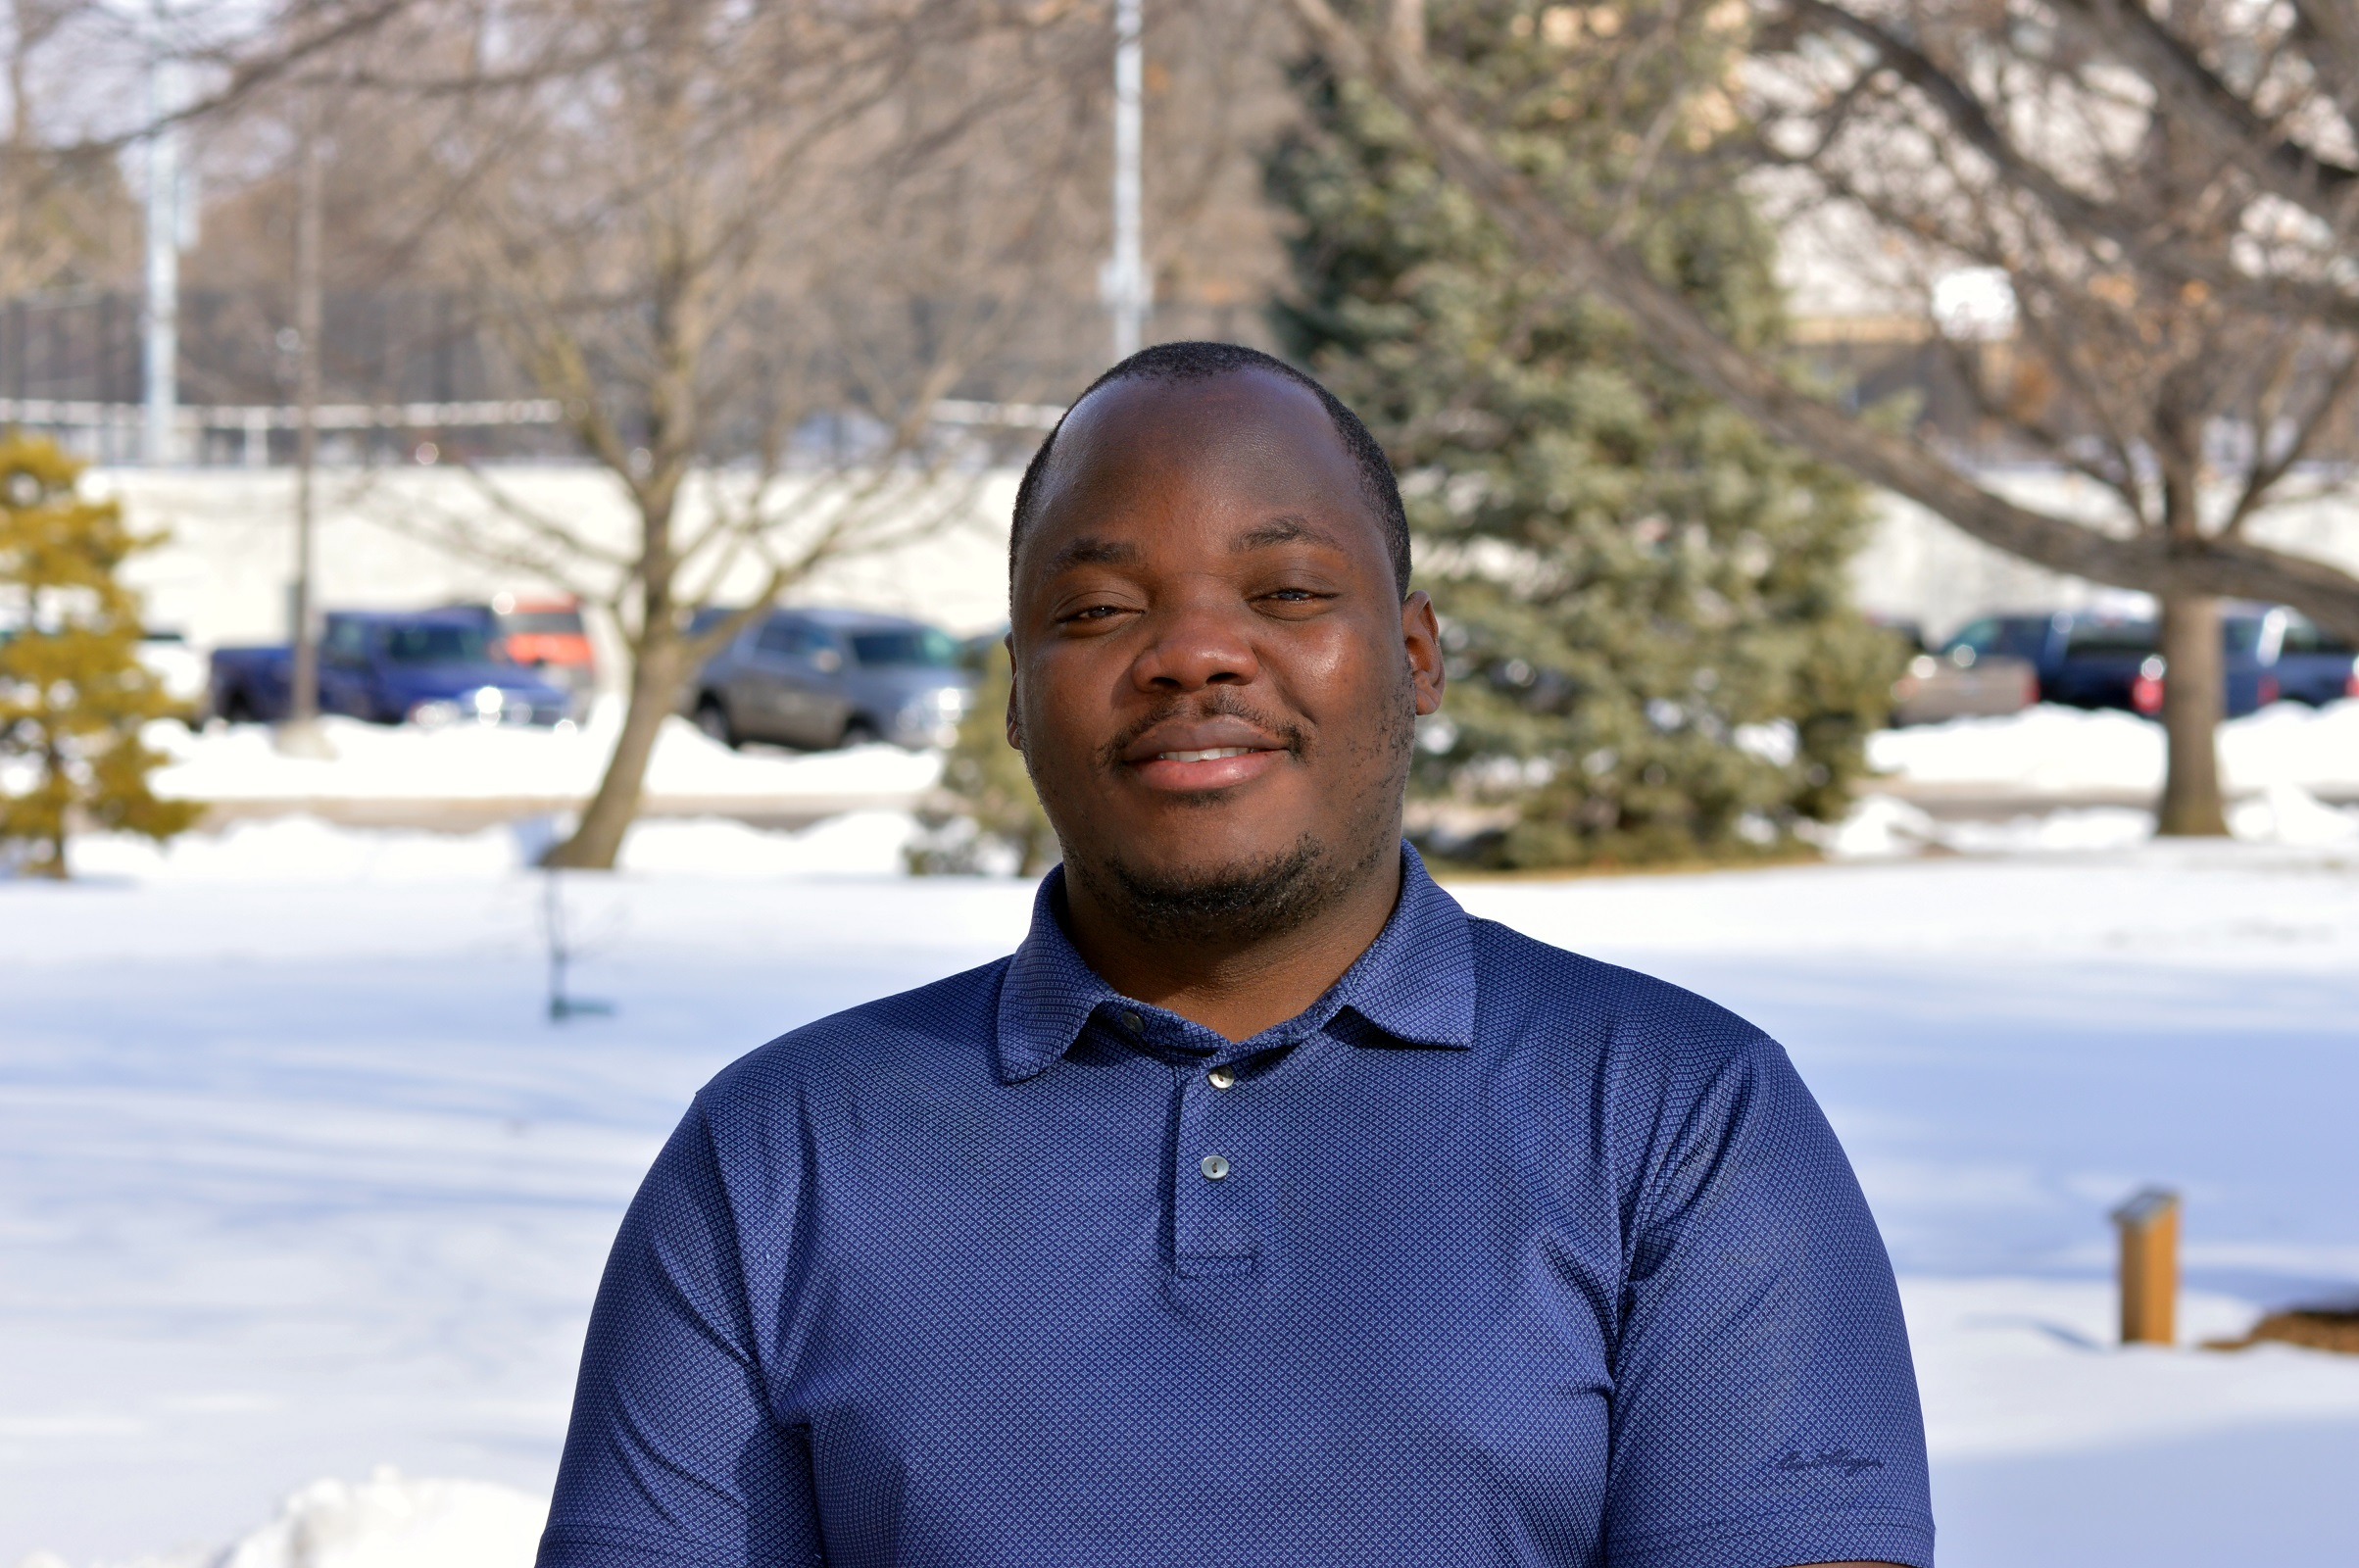 National Drought Mitigation Center research assistant Andrew Mwape is working with the state of Nebraska and four of its Natural Resources districts on drought planning for the Republican River Basin.